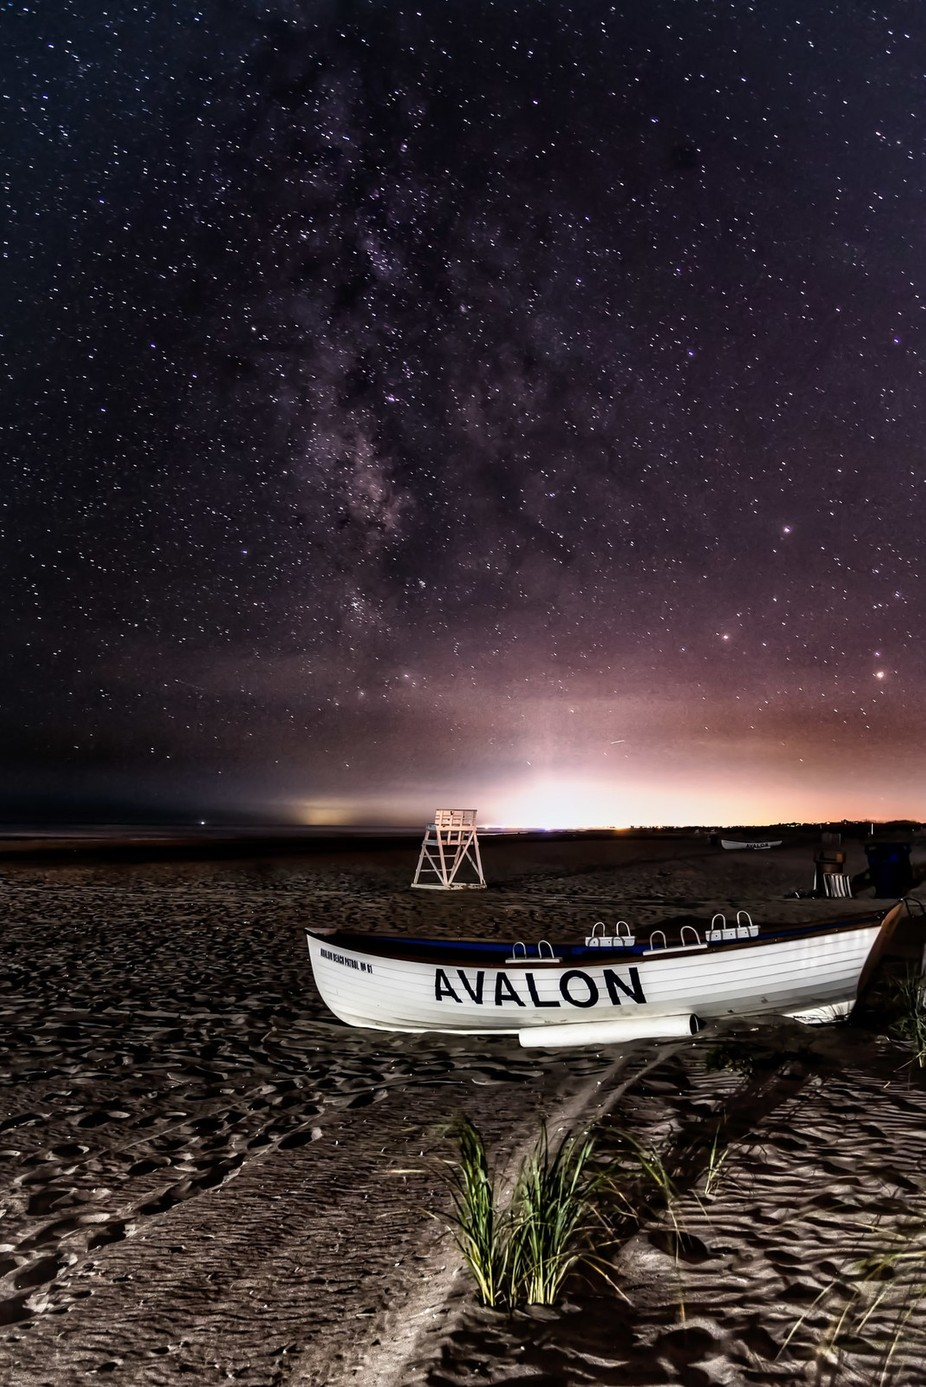 Avalon Night by saraascalon - Letters And Words Photo Contest